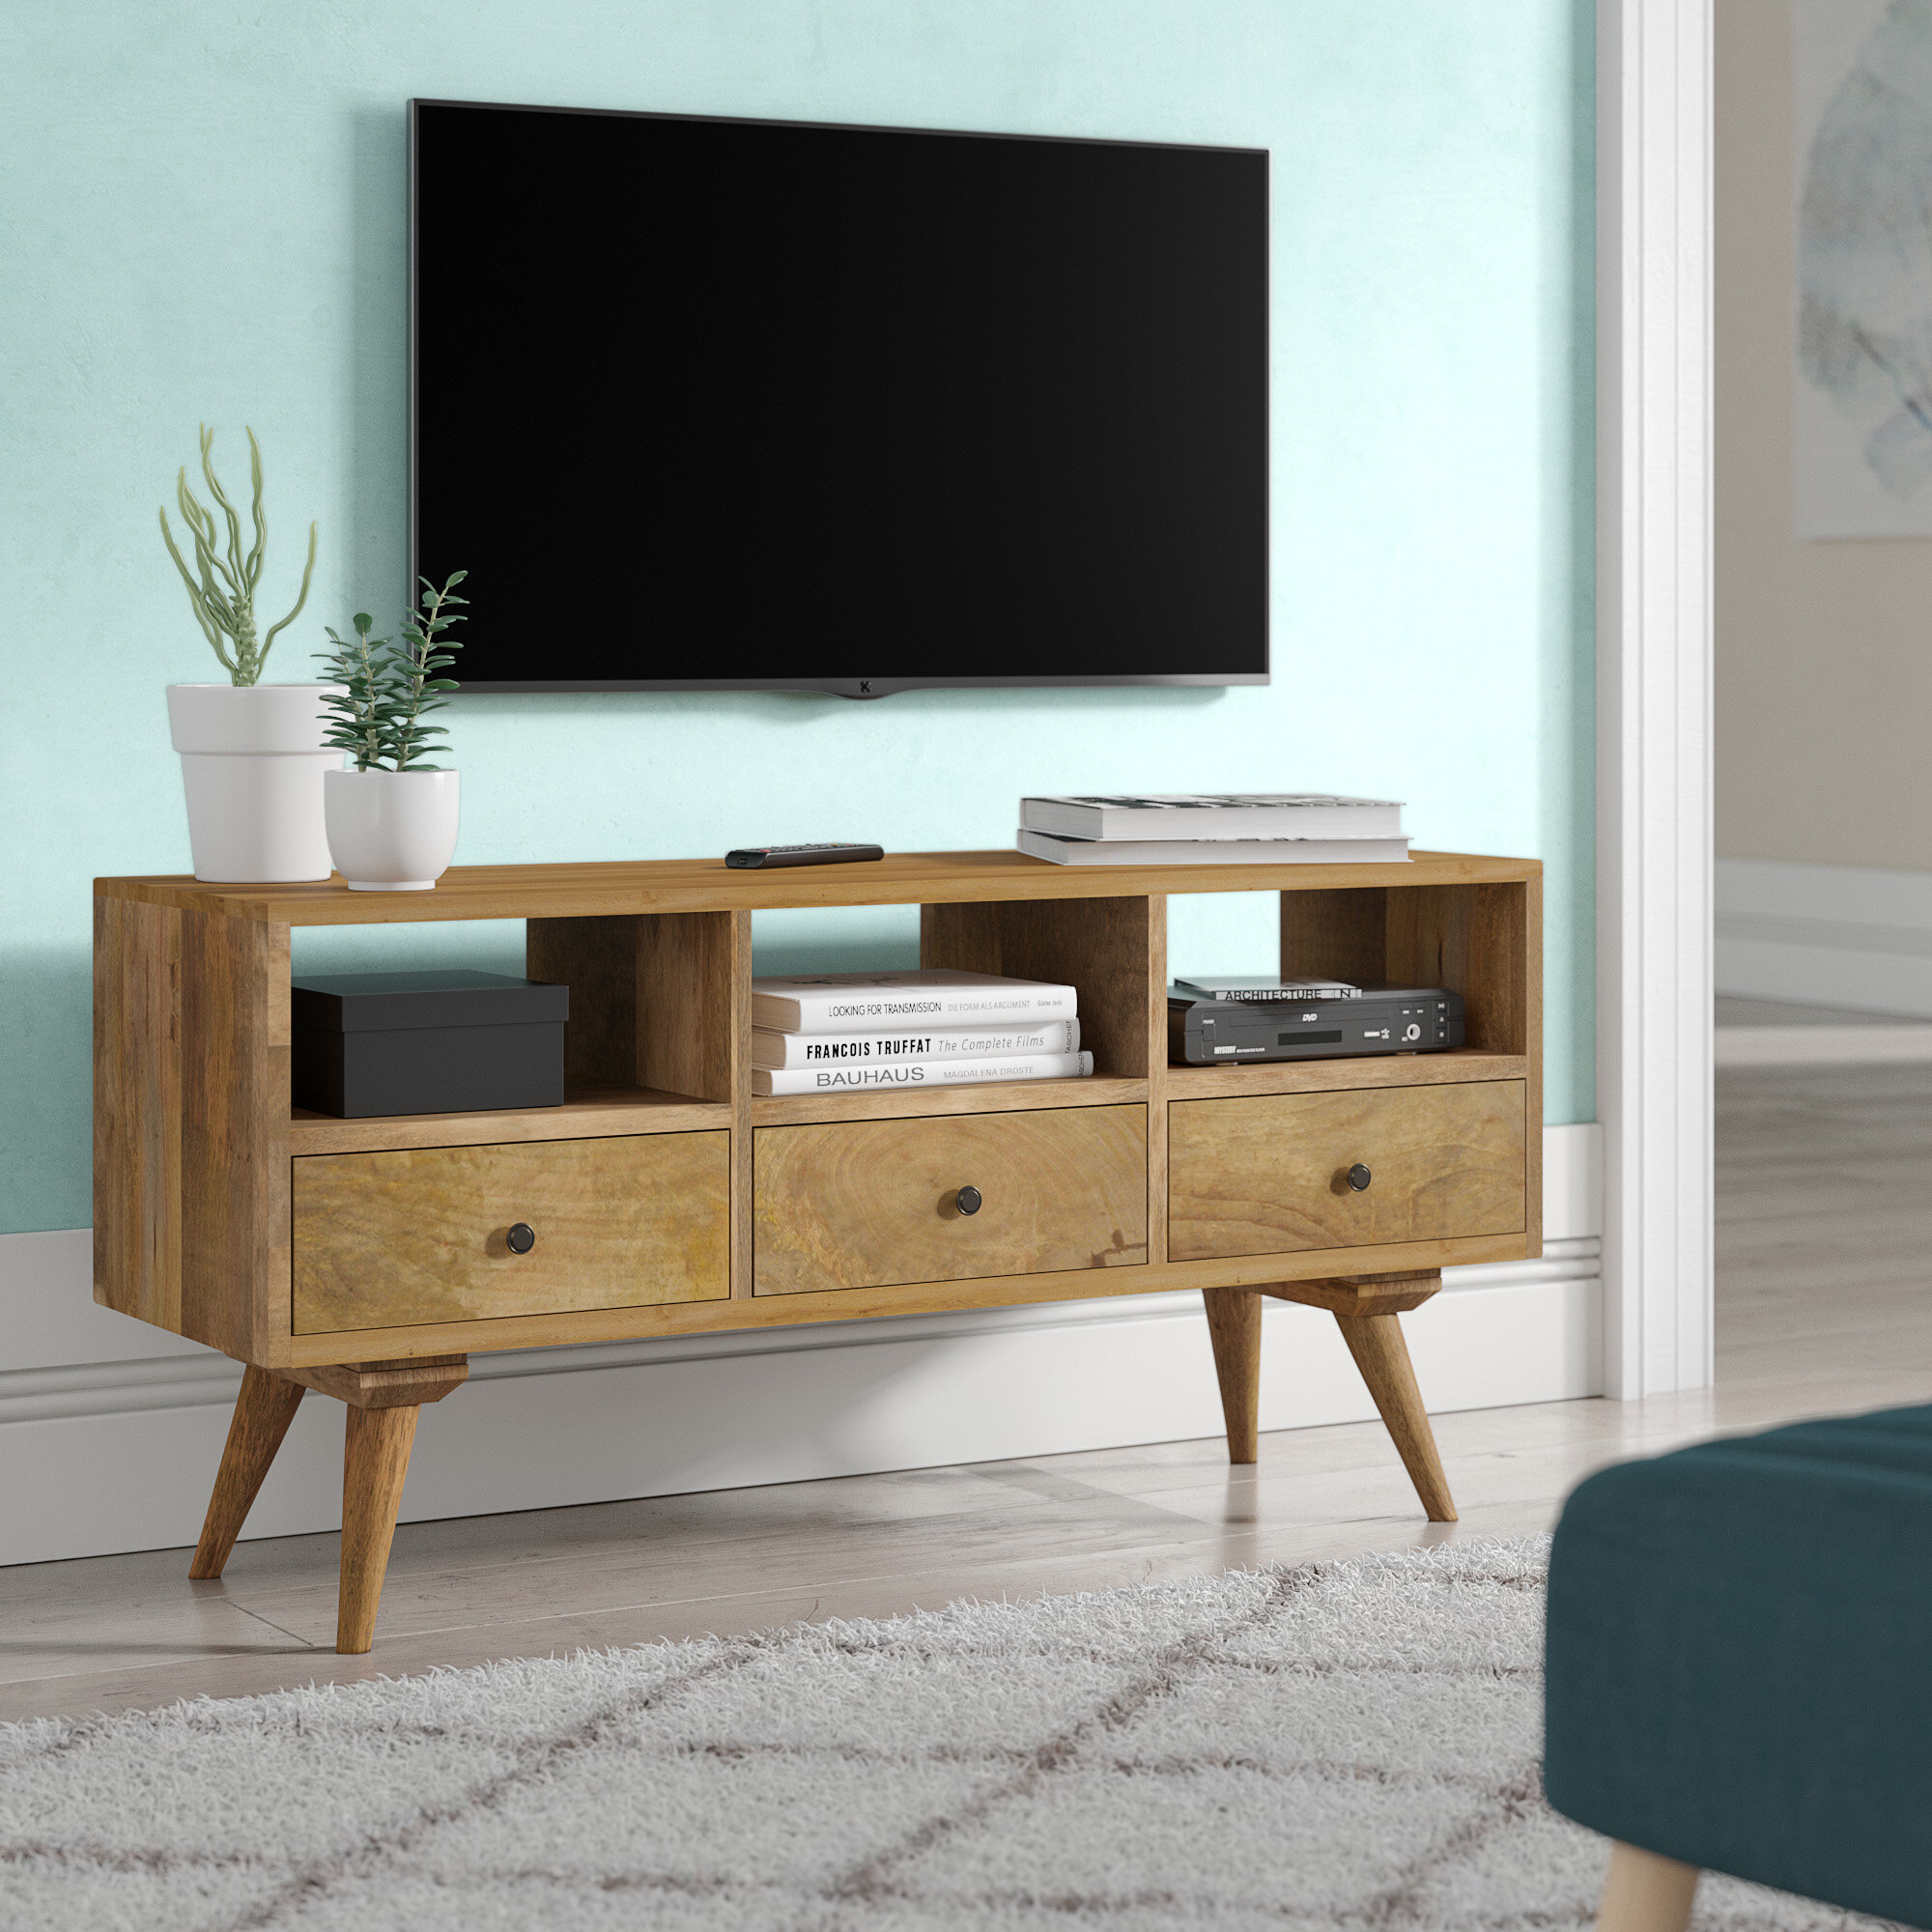 George Oliver Solid Wood Tv Stand For Tvs Up To 43 Reviews Wayfair Co Uk